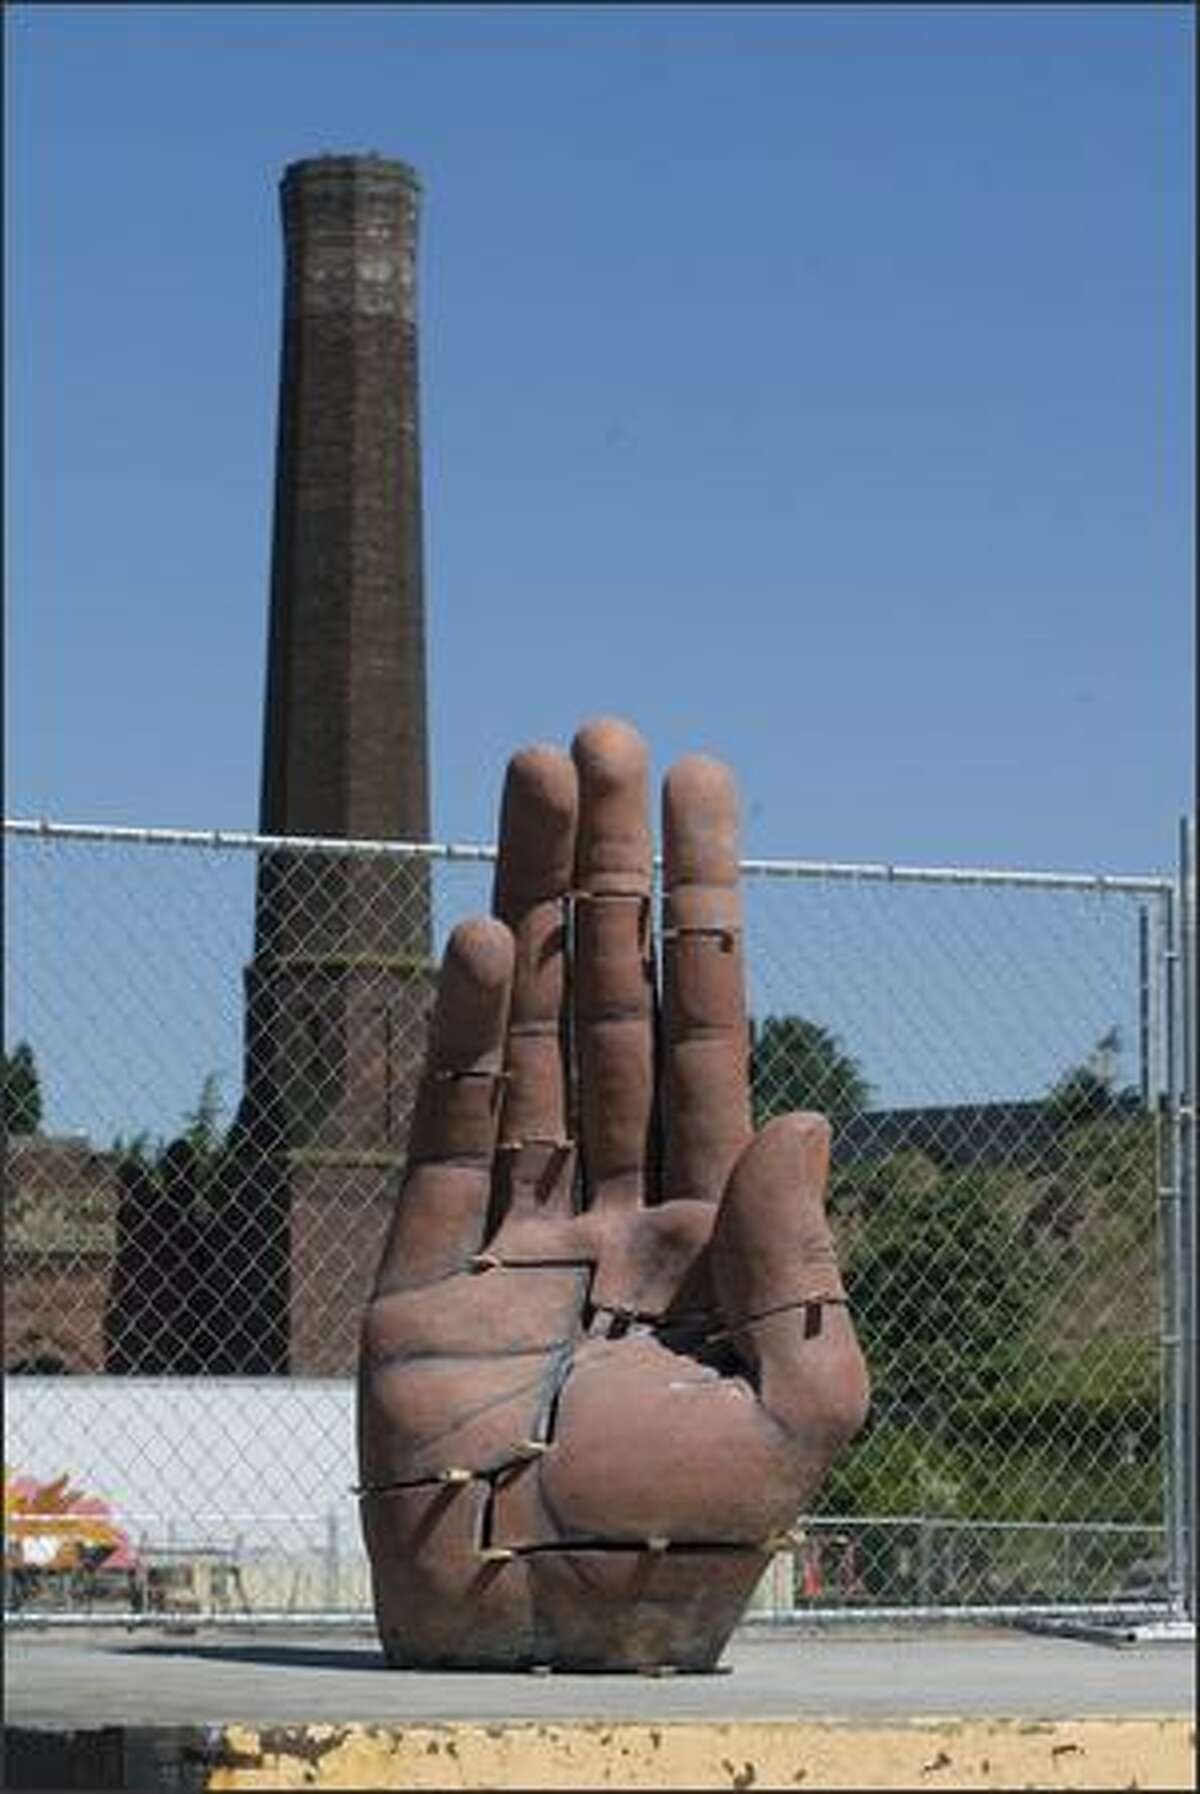 A giant hand near the site of the old ice house seems to be signaling to stop the destruction of the old buildings in Georgetown.